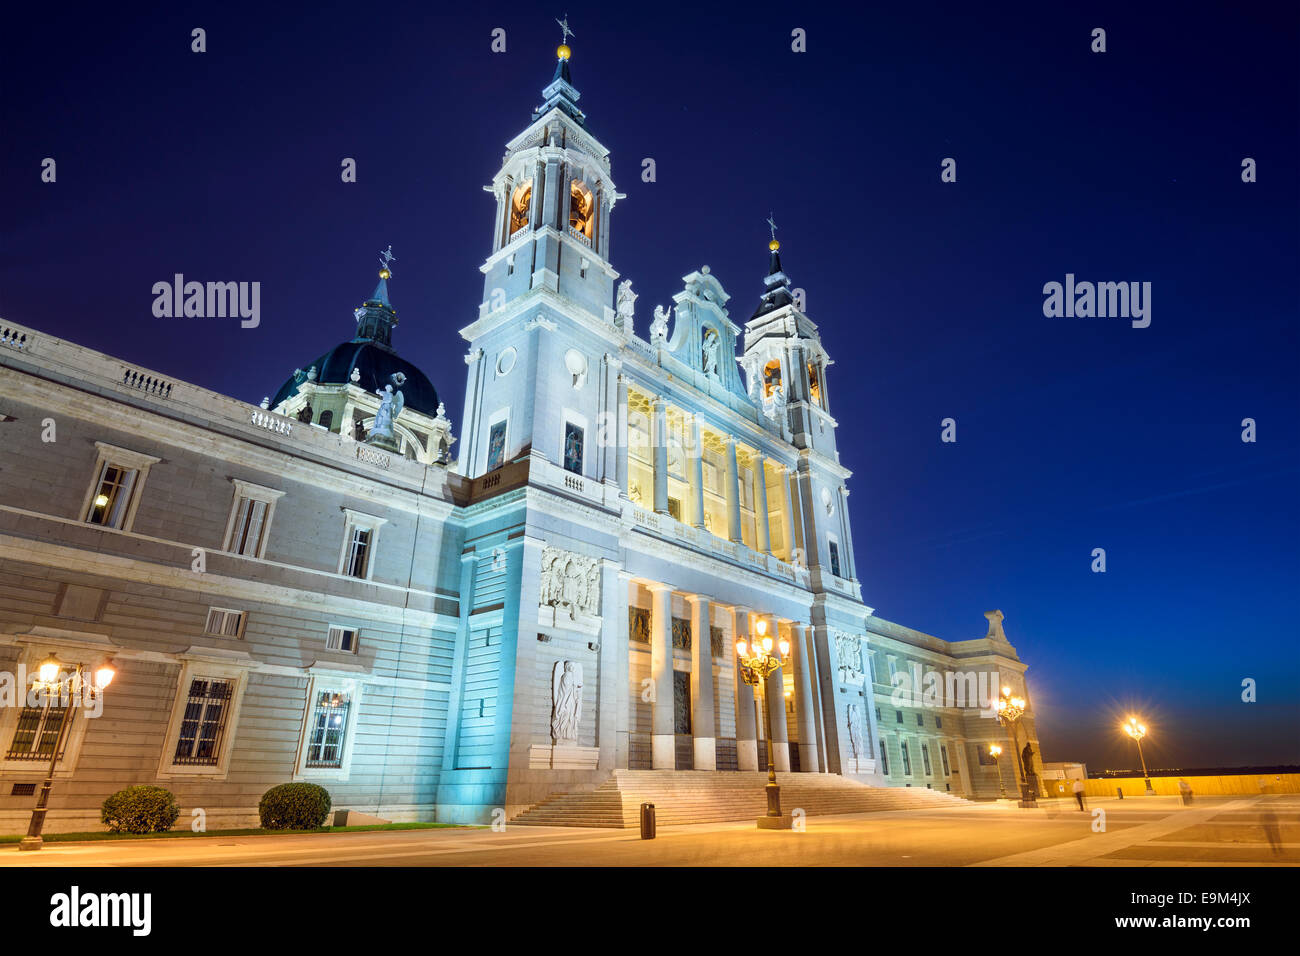 Madrid, Spain at La Almudena Cathedral at night. - Stock Image